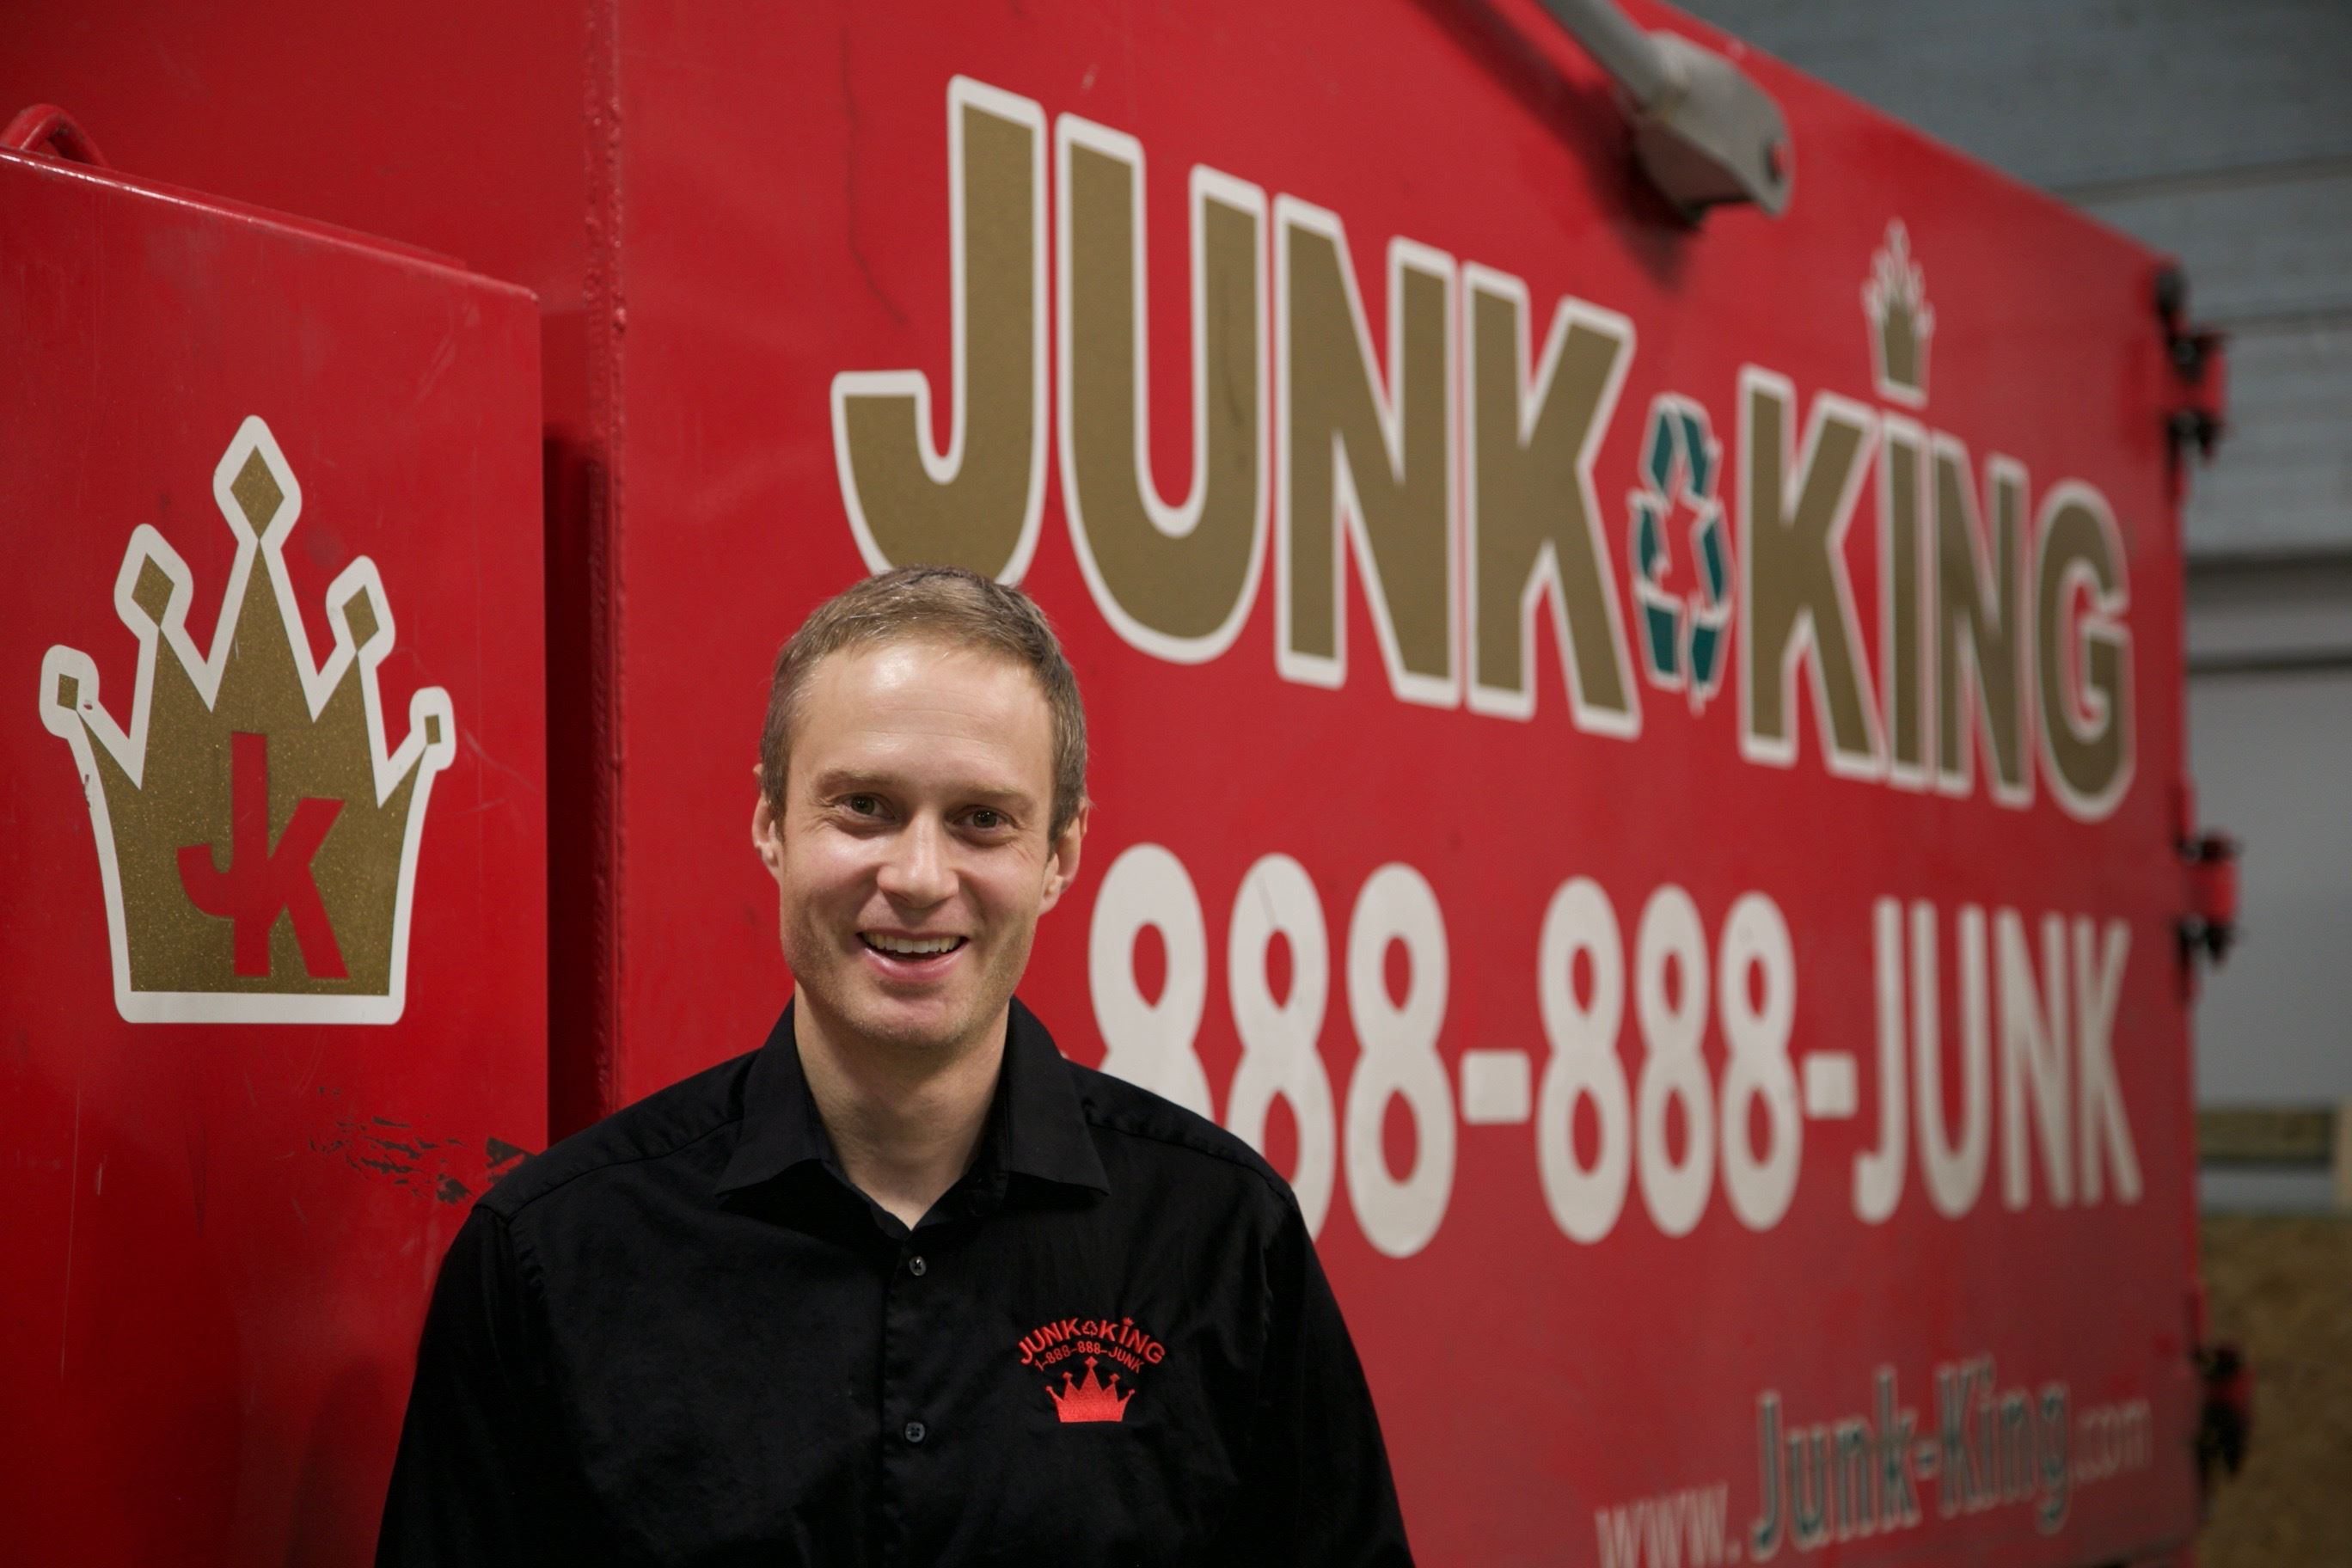 Junk King Franchise Owner,  Hagen Kern.